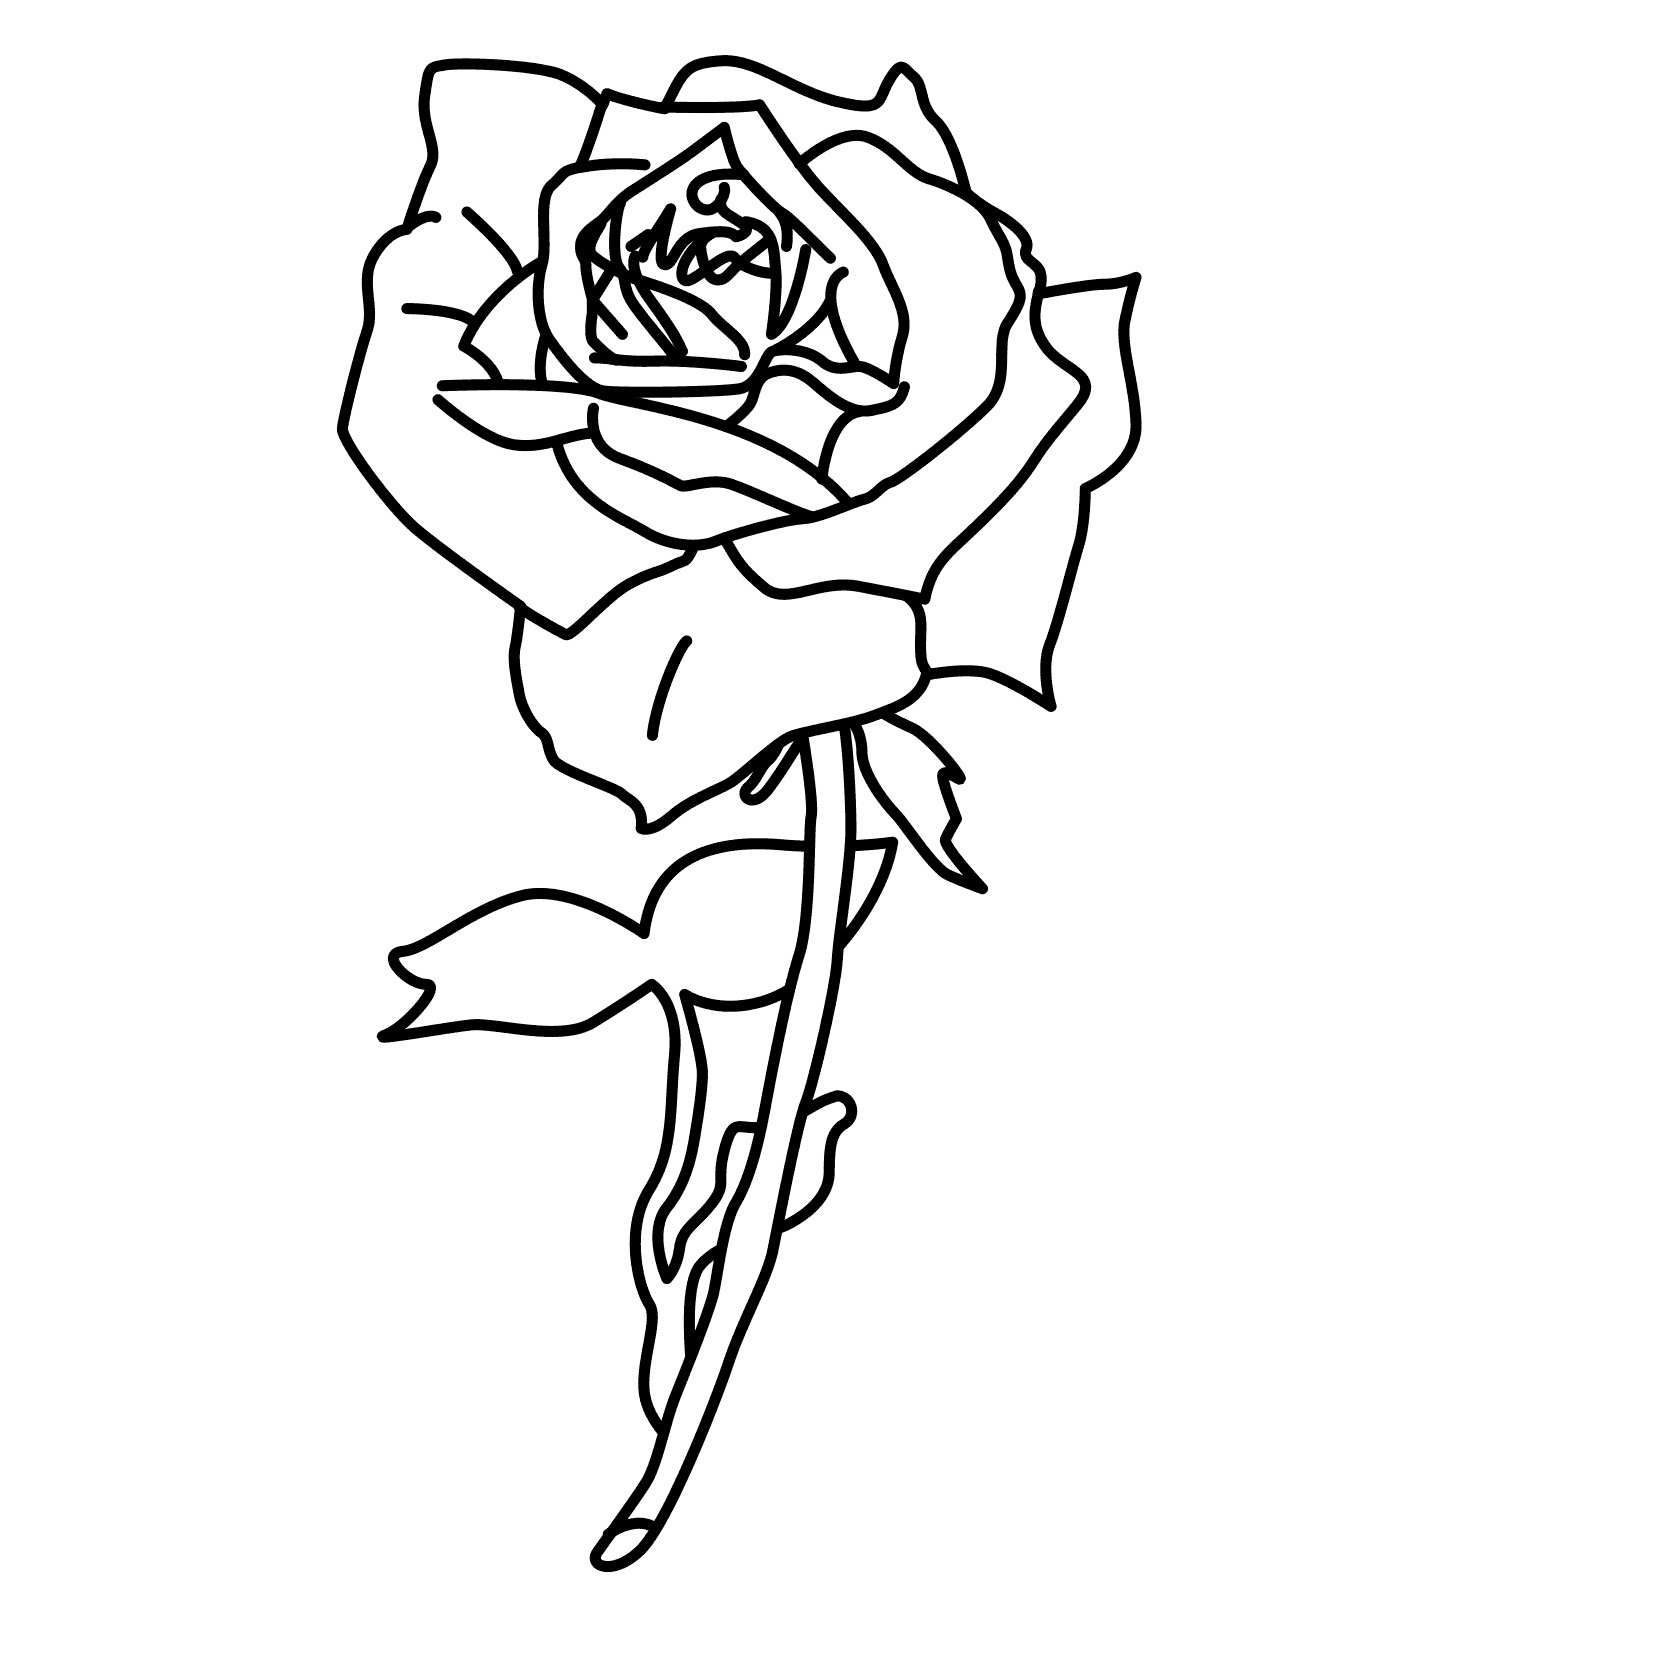 coloring picture rose rose flower coloring pages getcoloringpagescom rose picture coloring